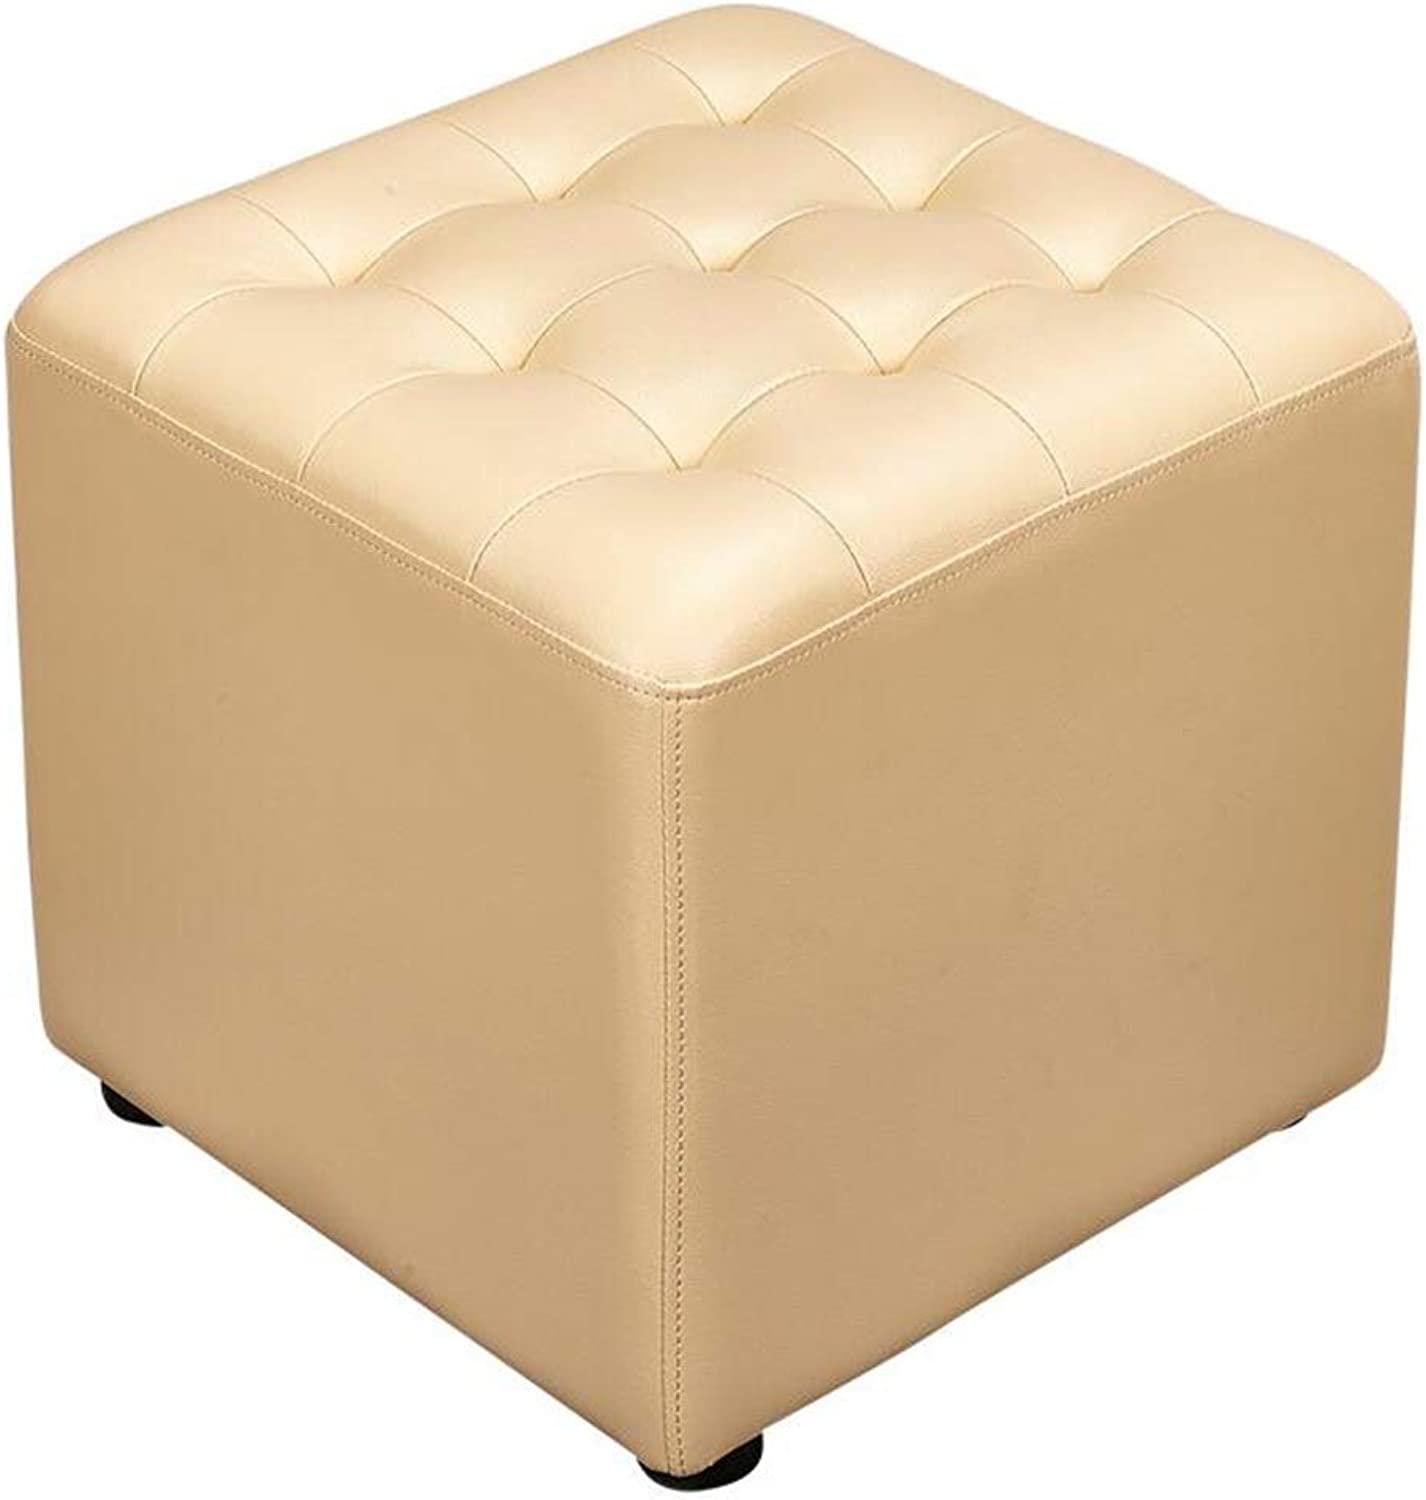 Pouffes and Footstools PU, Change shoes Home Small Stool Comfortable Cushion Load Capacity 150kg, 5 colors ( color   Beige , Size   40X40X40CM )